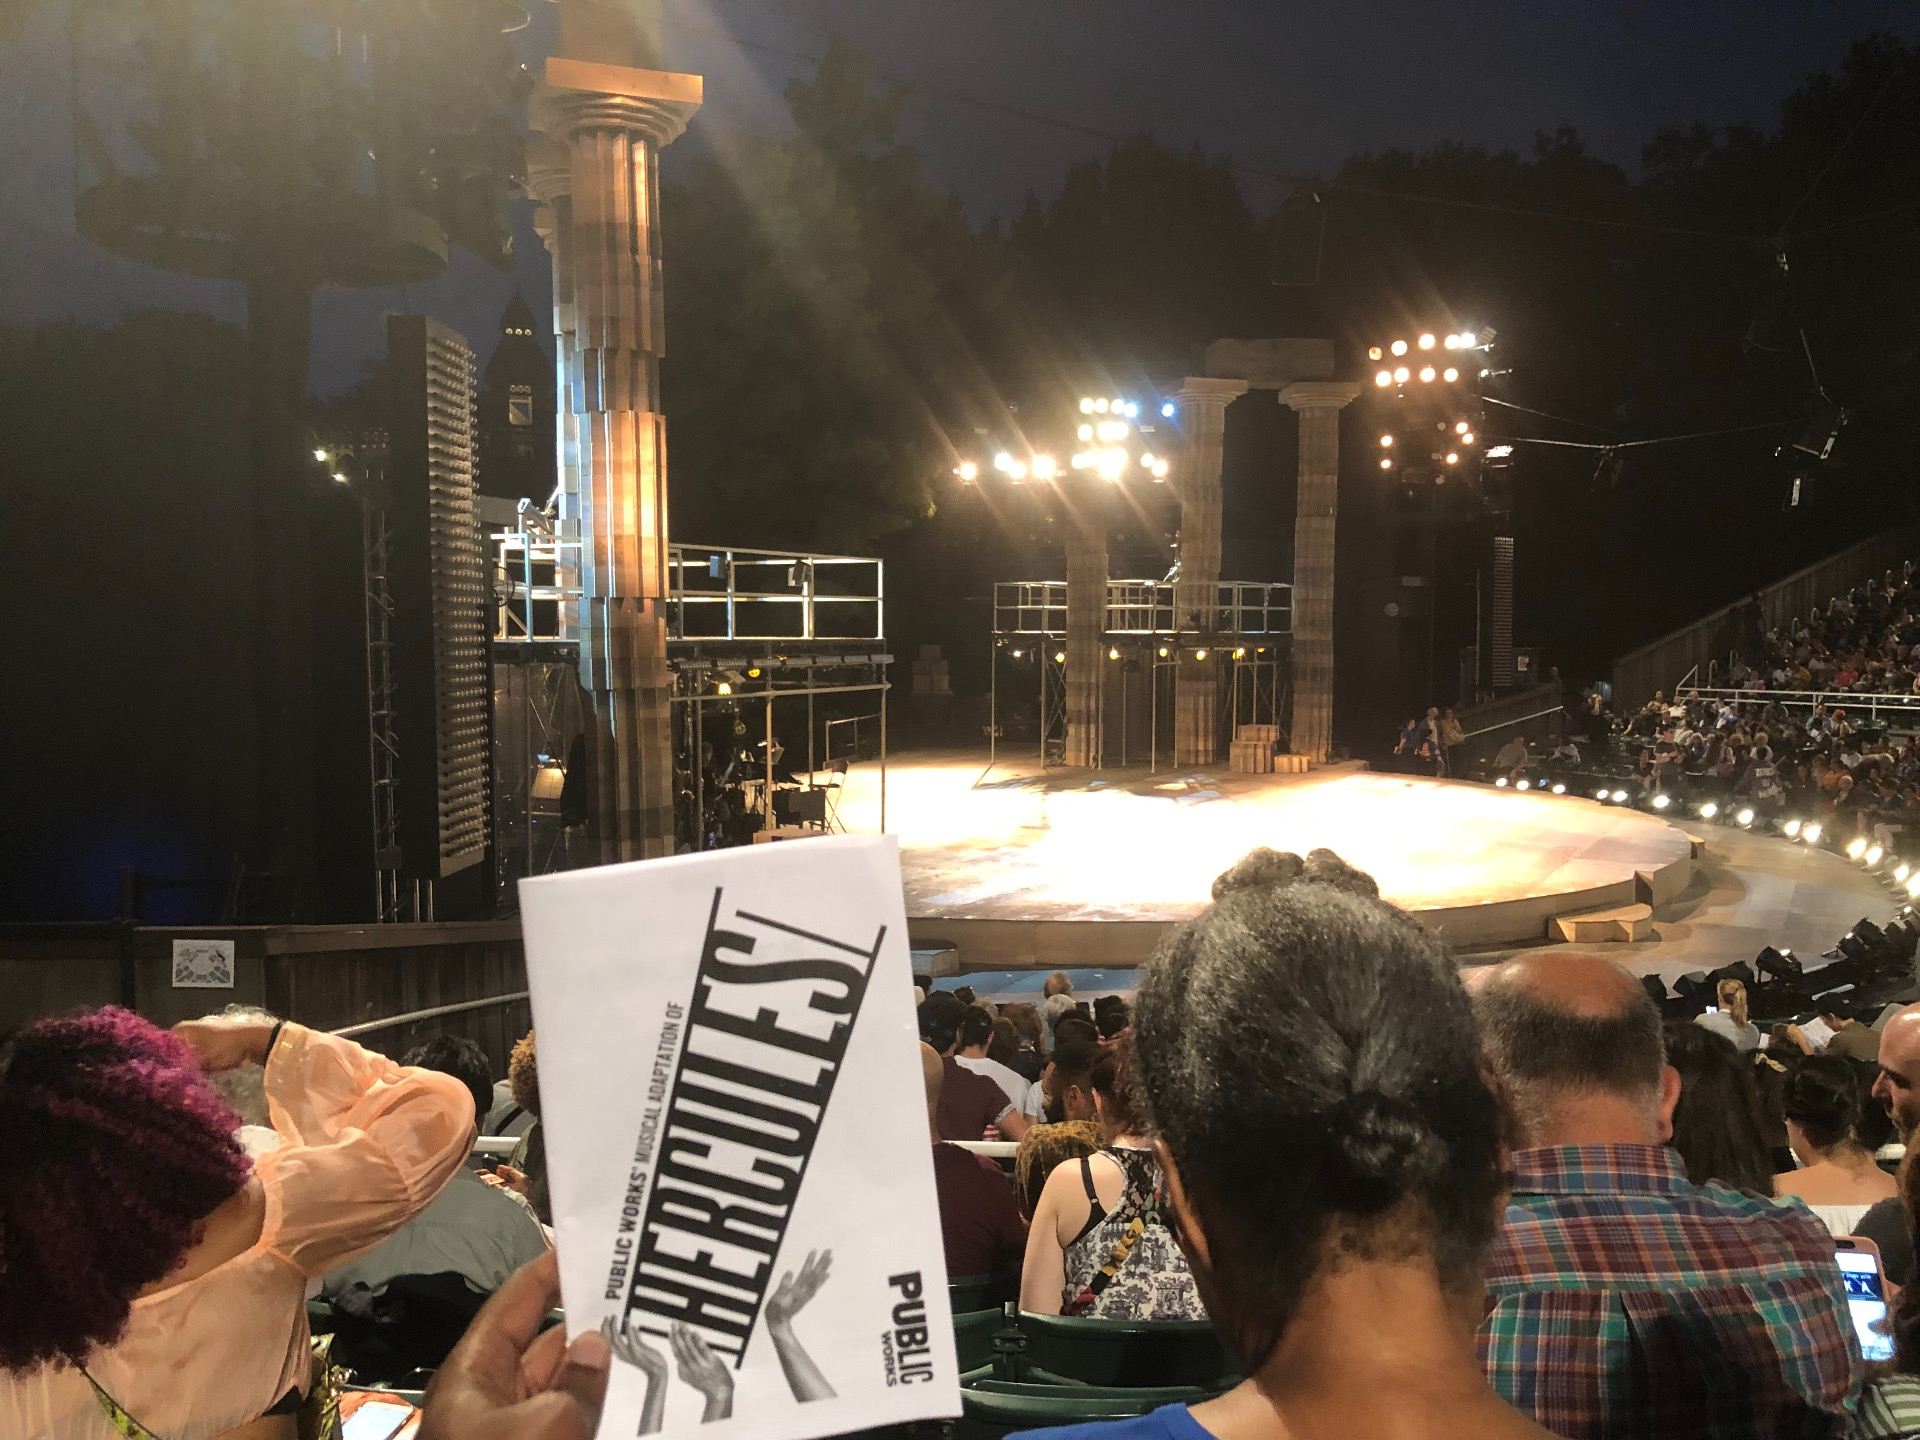 The Delacorte Theater in Central Park Vak O Rij N Stoel 511